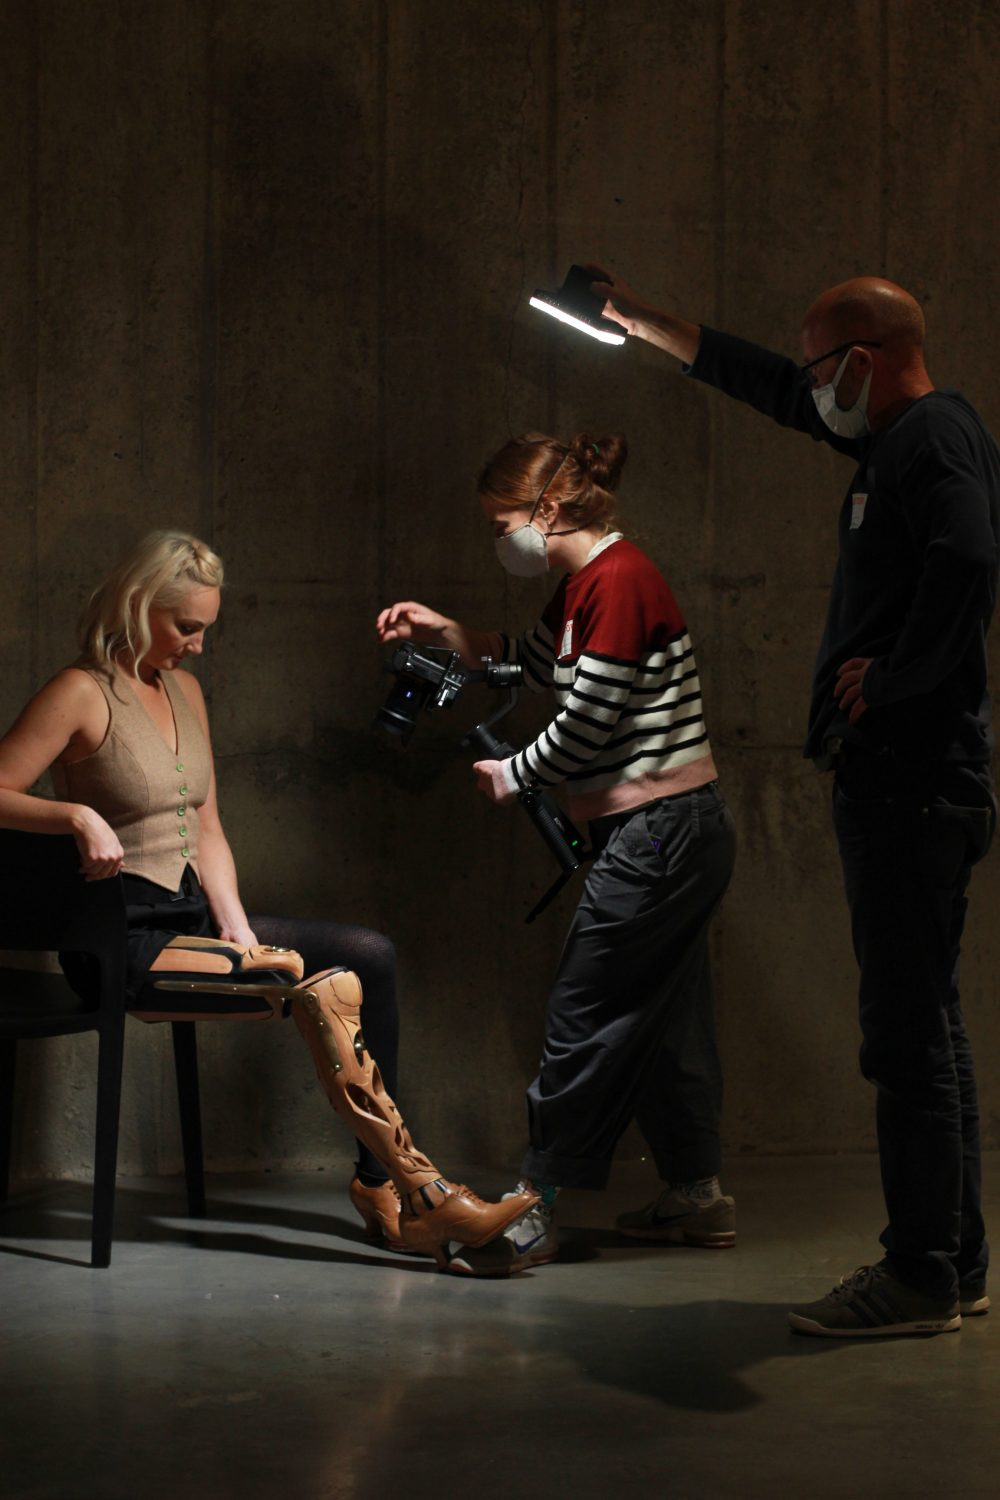 The Alternative Limb Project, photography by Becky Dann 01